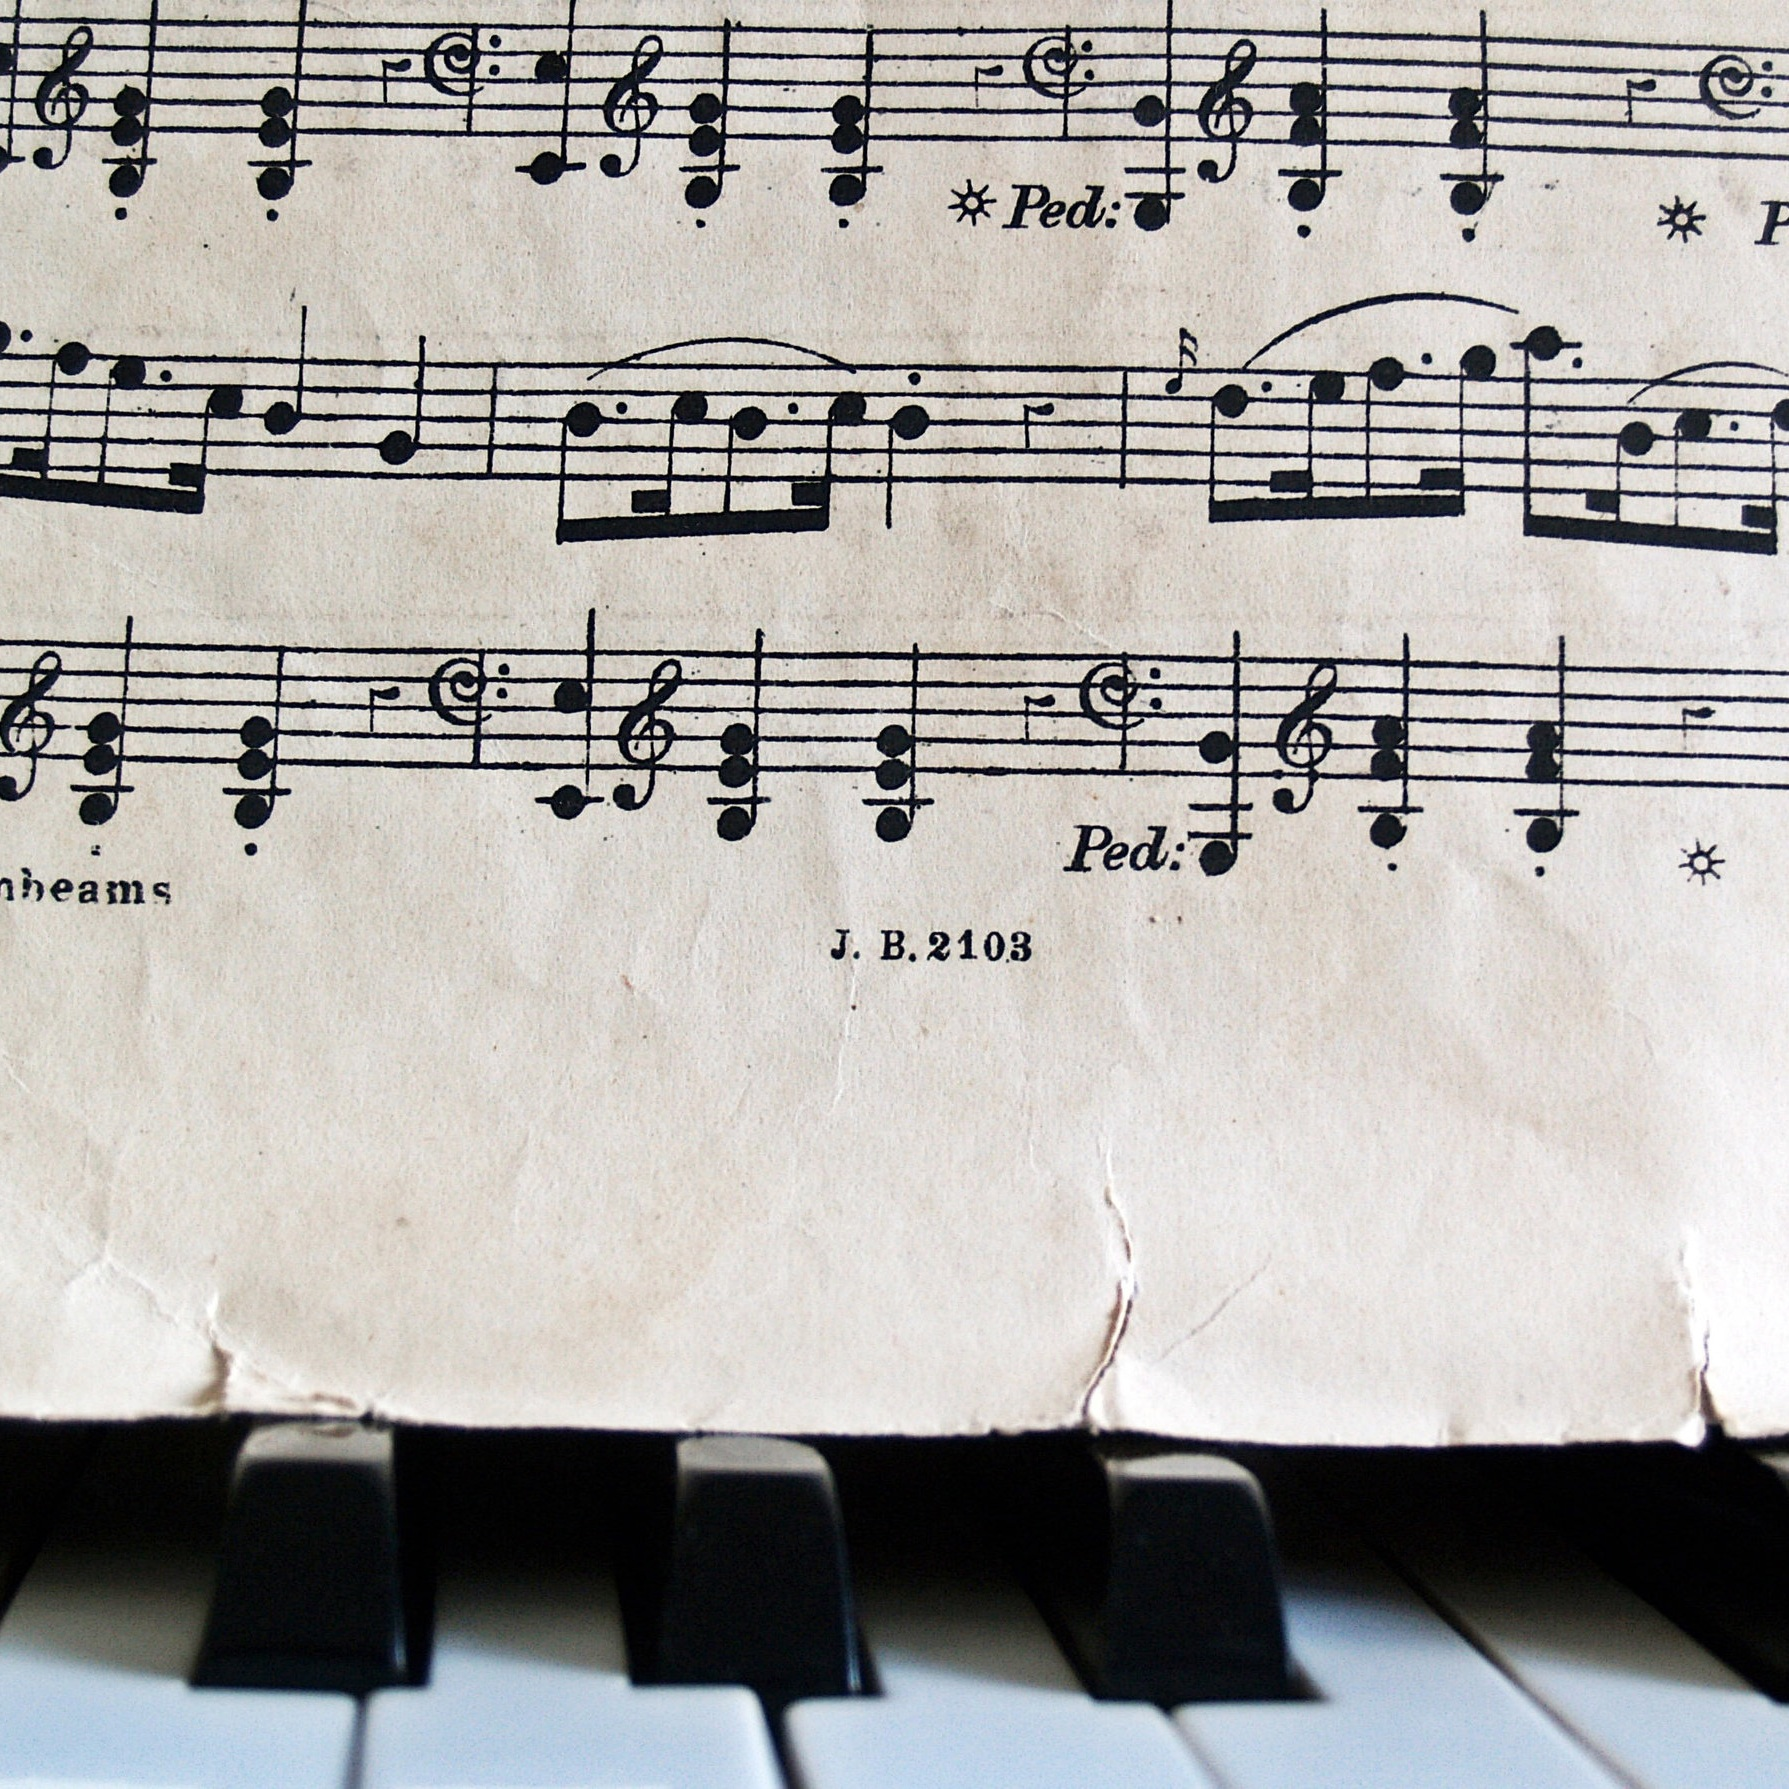 music-notes-and-sheet-music-on-a-piano.jpg